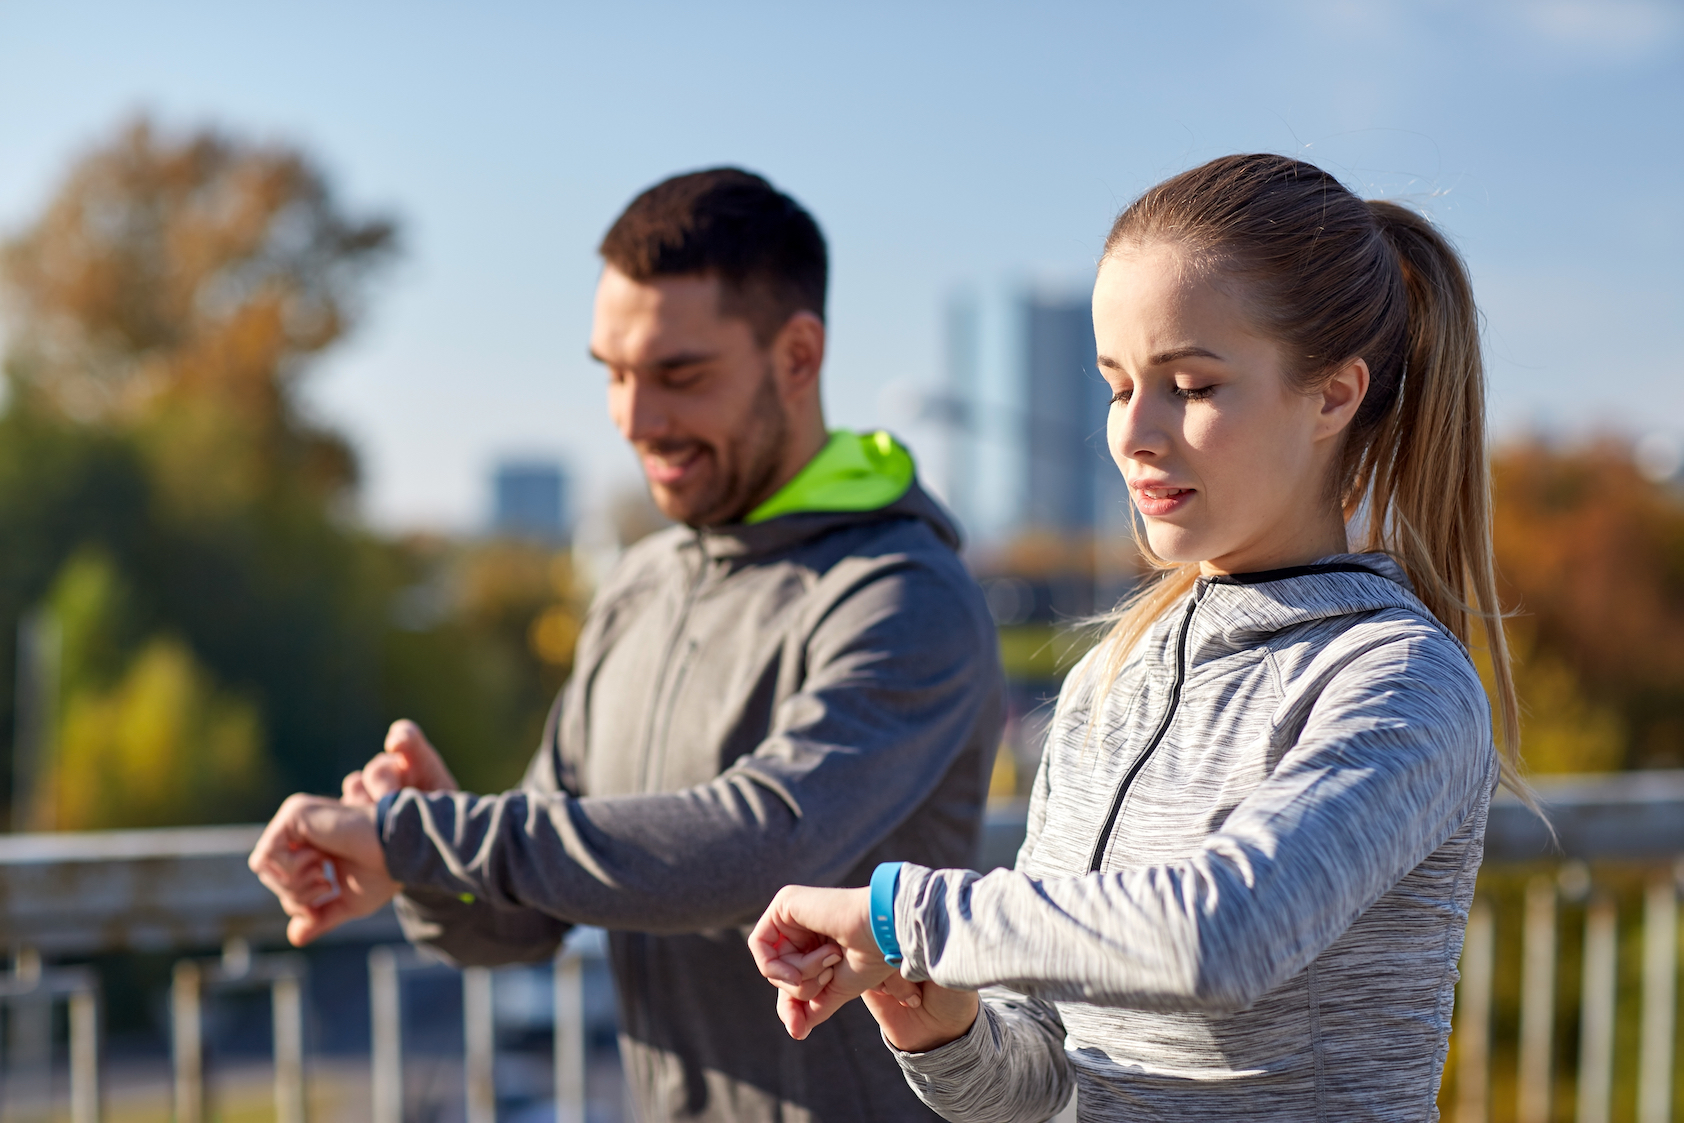 Wristband fitness trackers such as Fitbit and Apple Watch accurately measure heart rate but miss the mark on how many calories are burned.